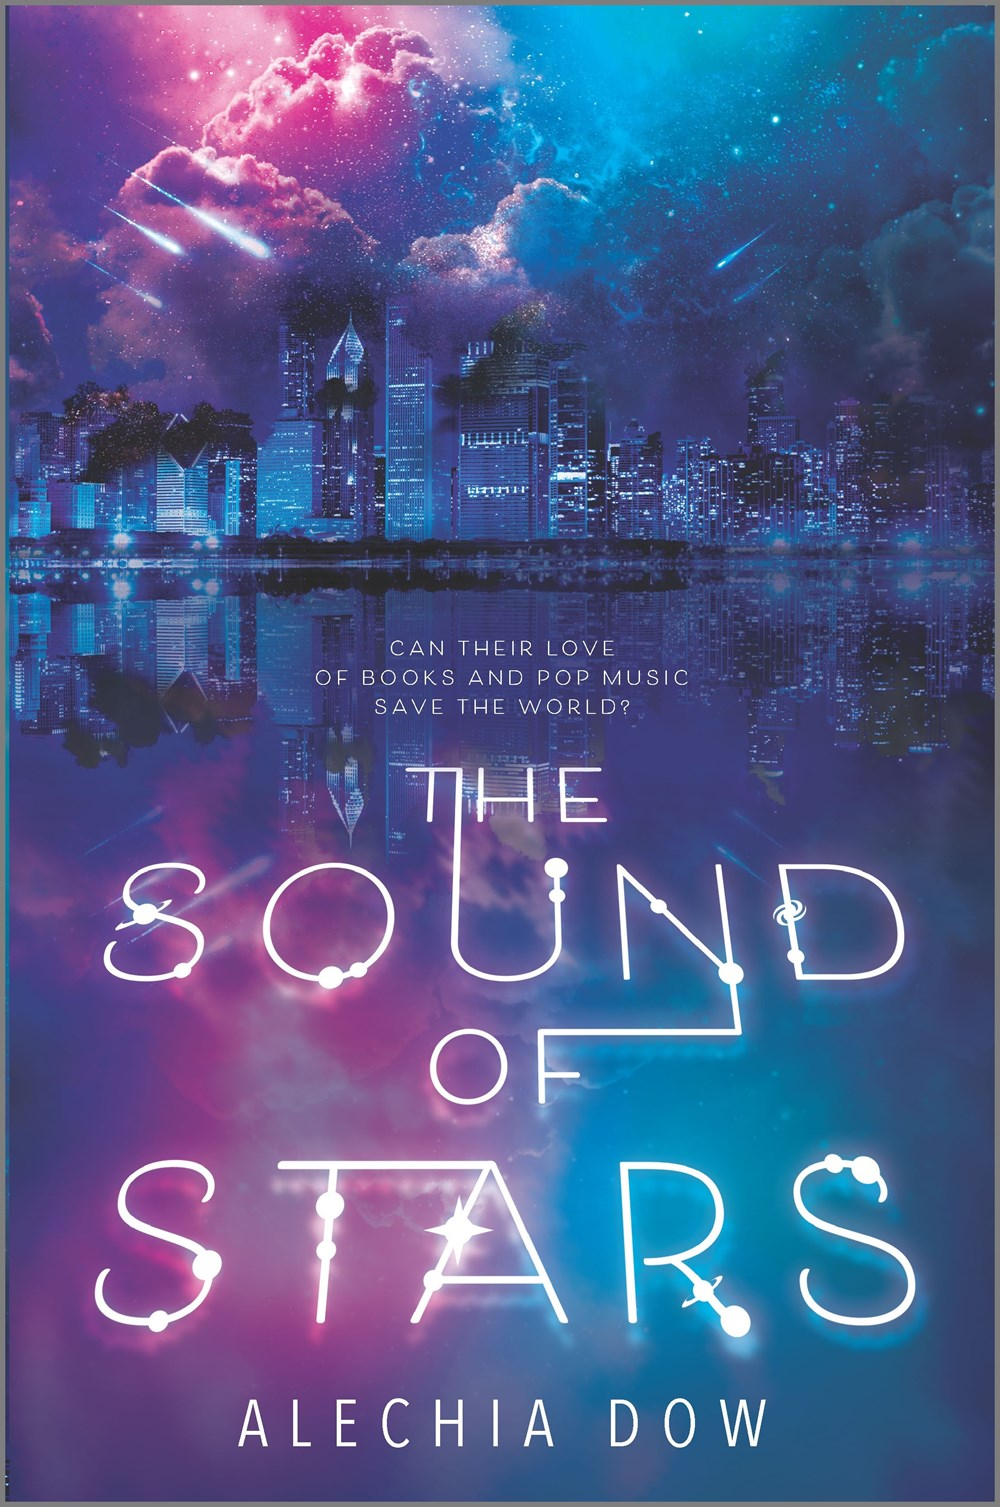 Image for The Sound of Stars by Alechia Dow